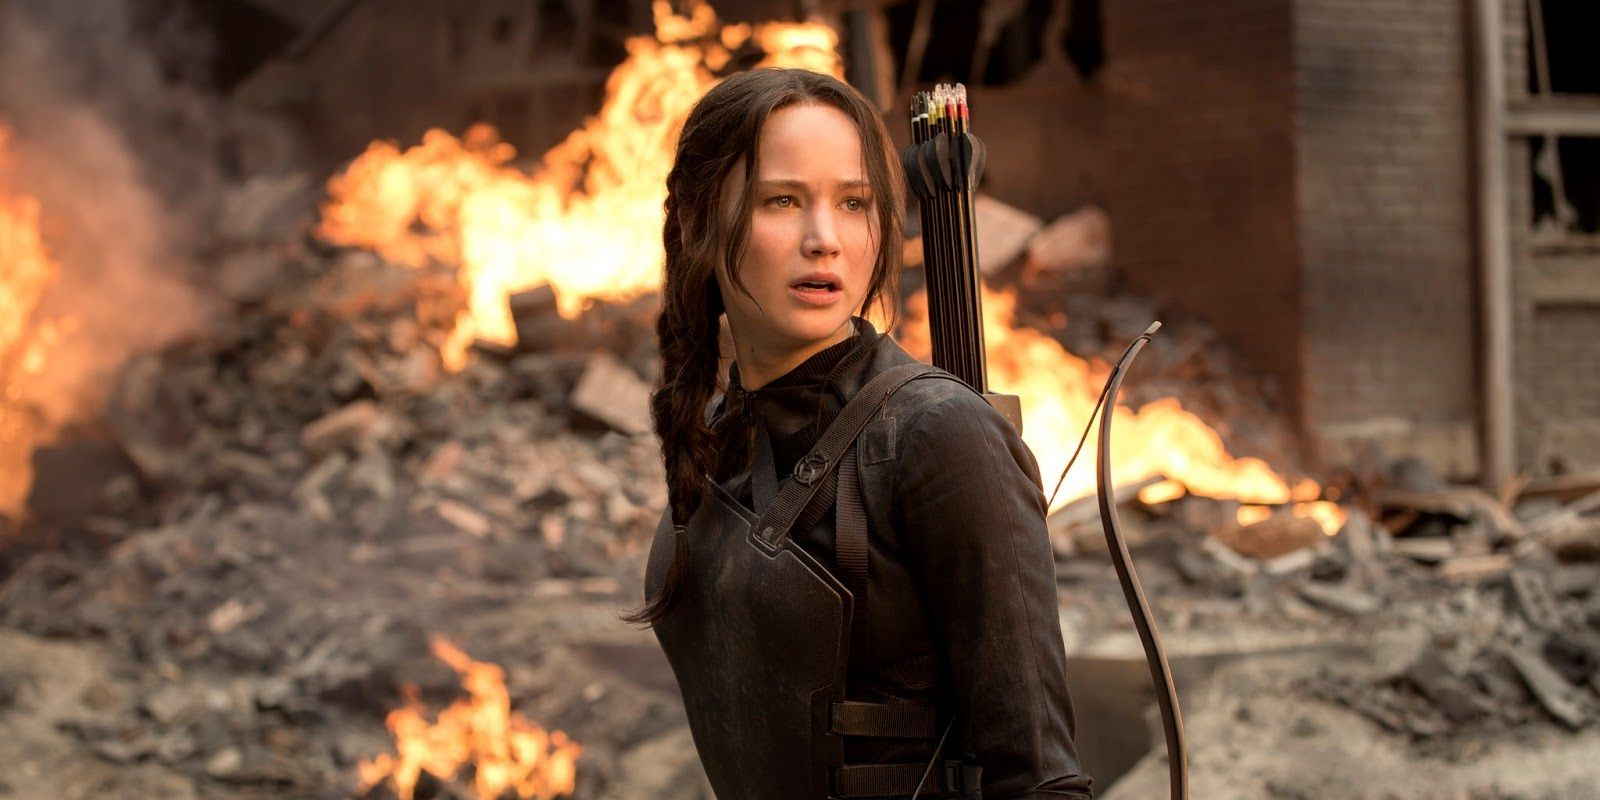 The Hunger Games Prequel Movie Has Been Officially Confirmed